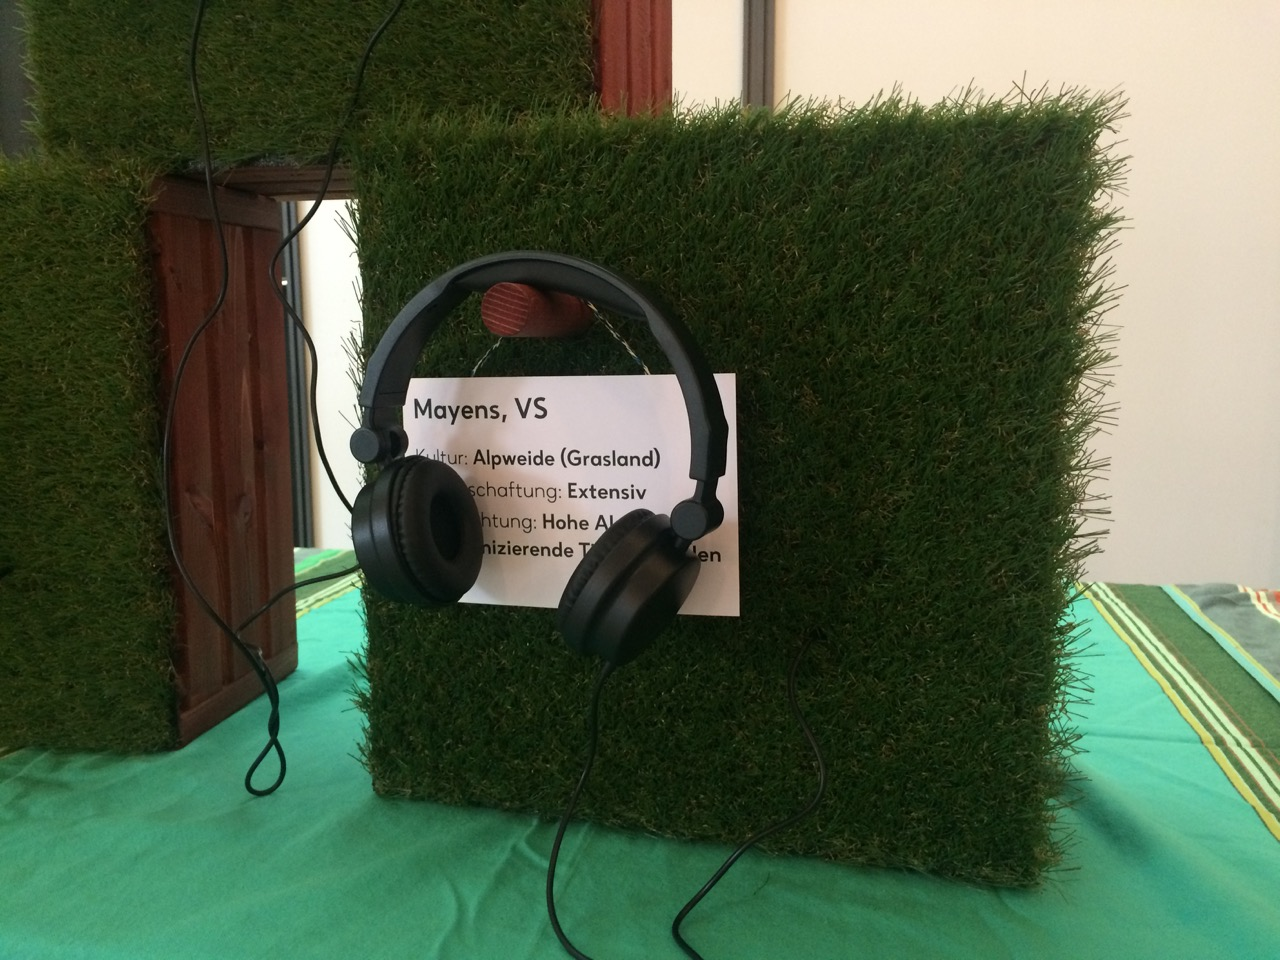 The visitors can listen to 5 recorded floor sounds.